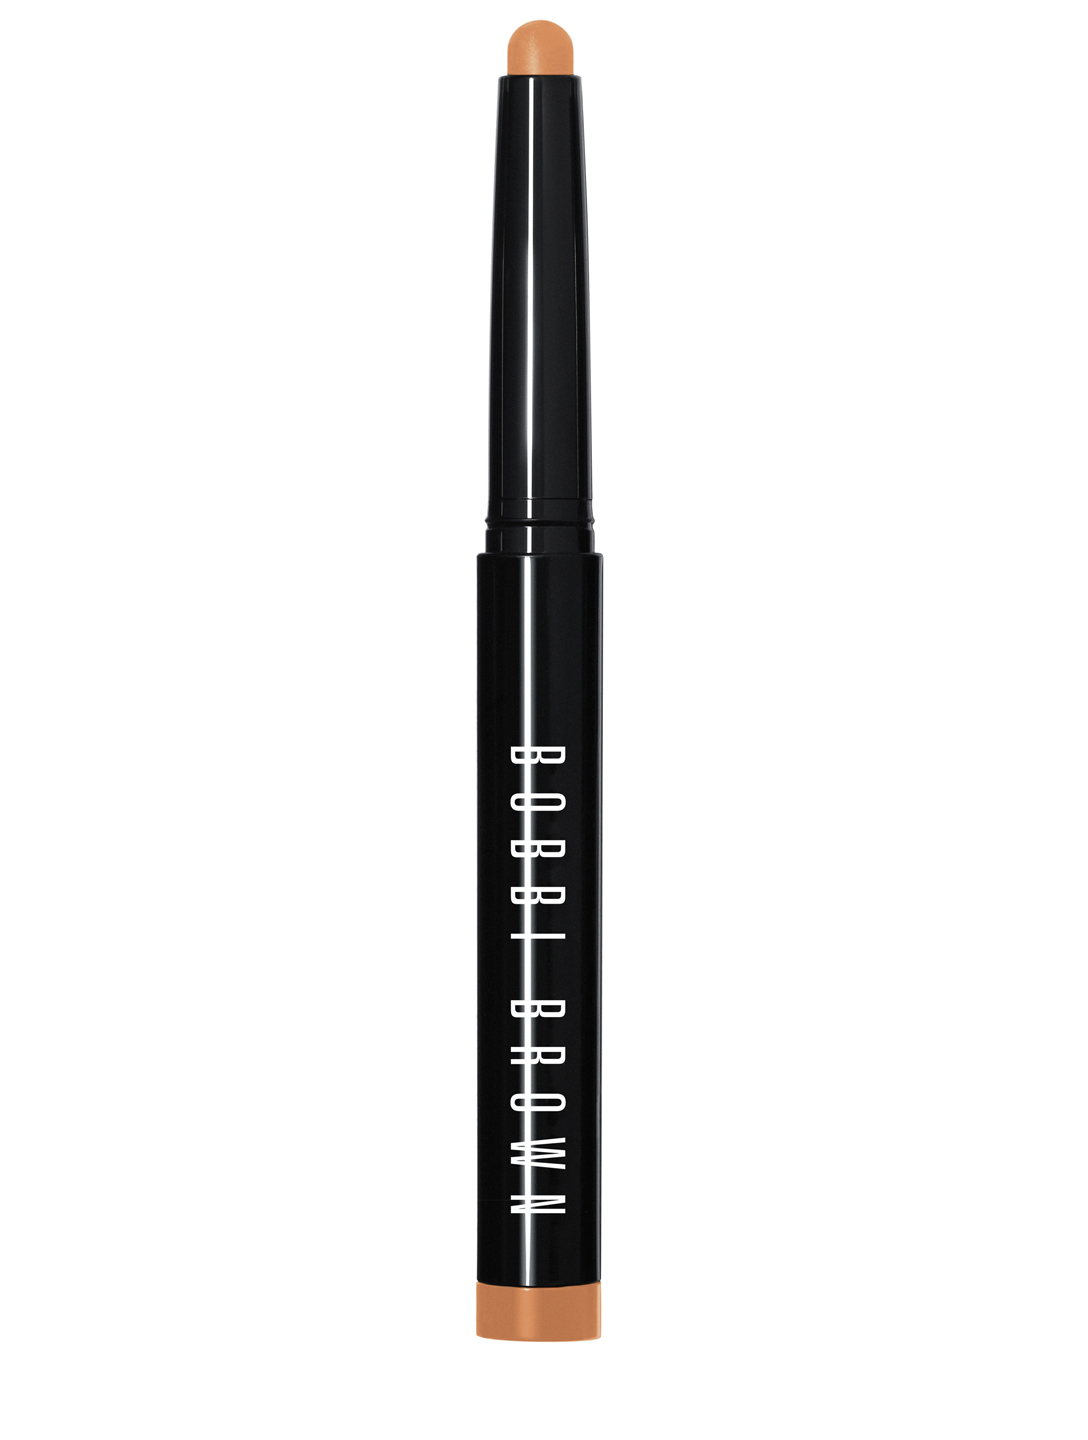 BOBBI BROWN Long-Wear Cream Shadow Stick Beauty Neutral